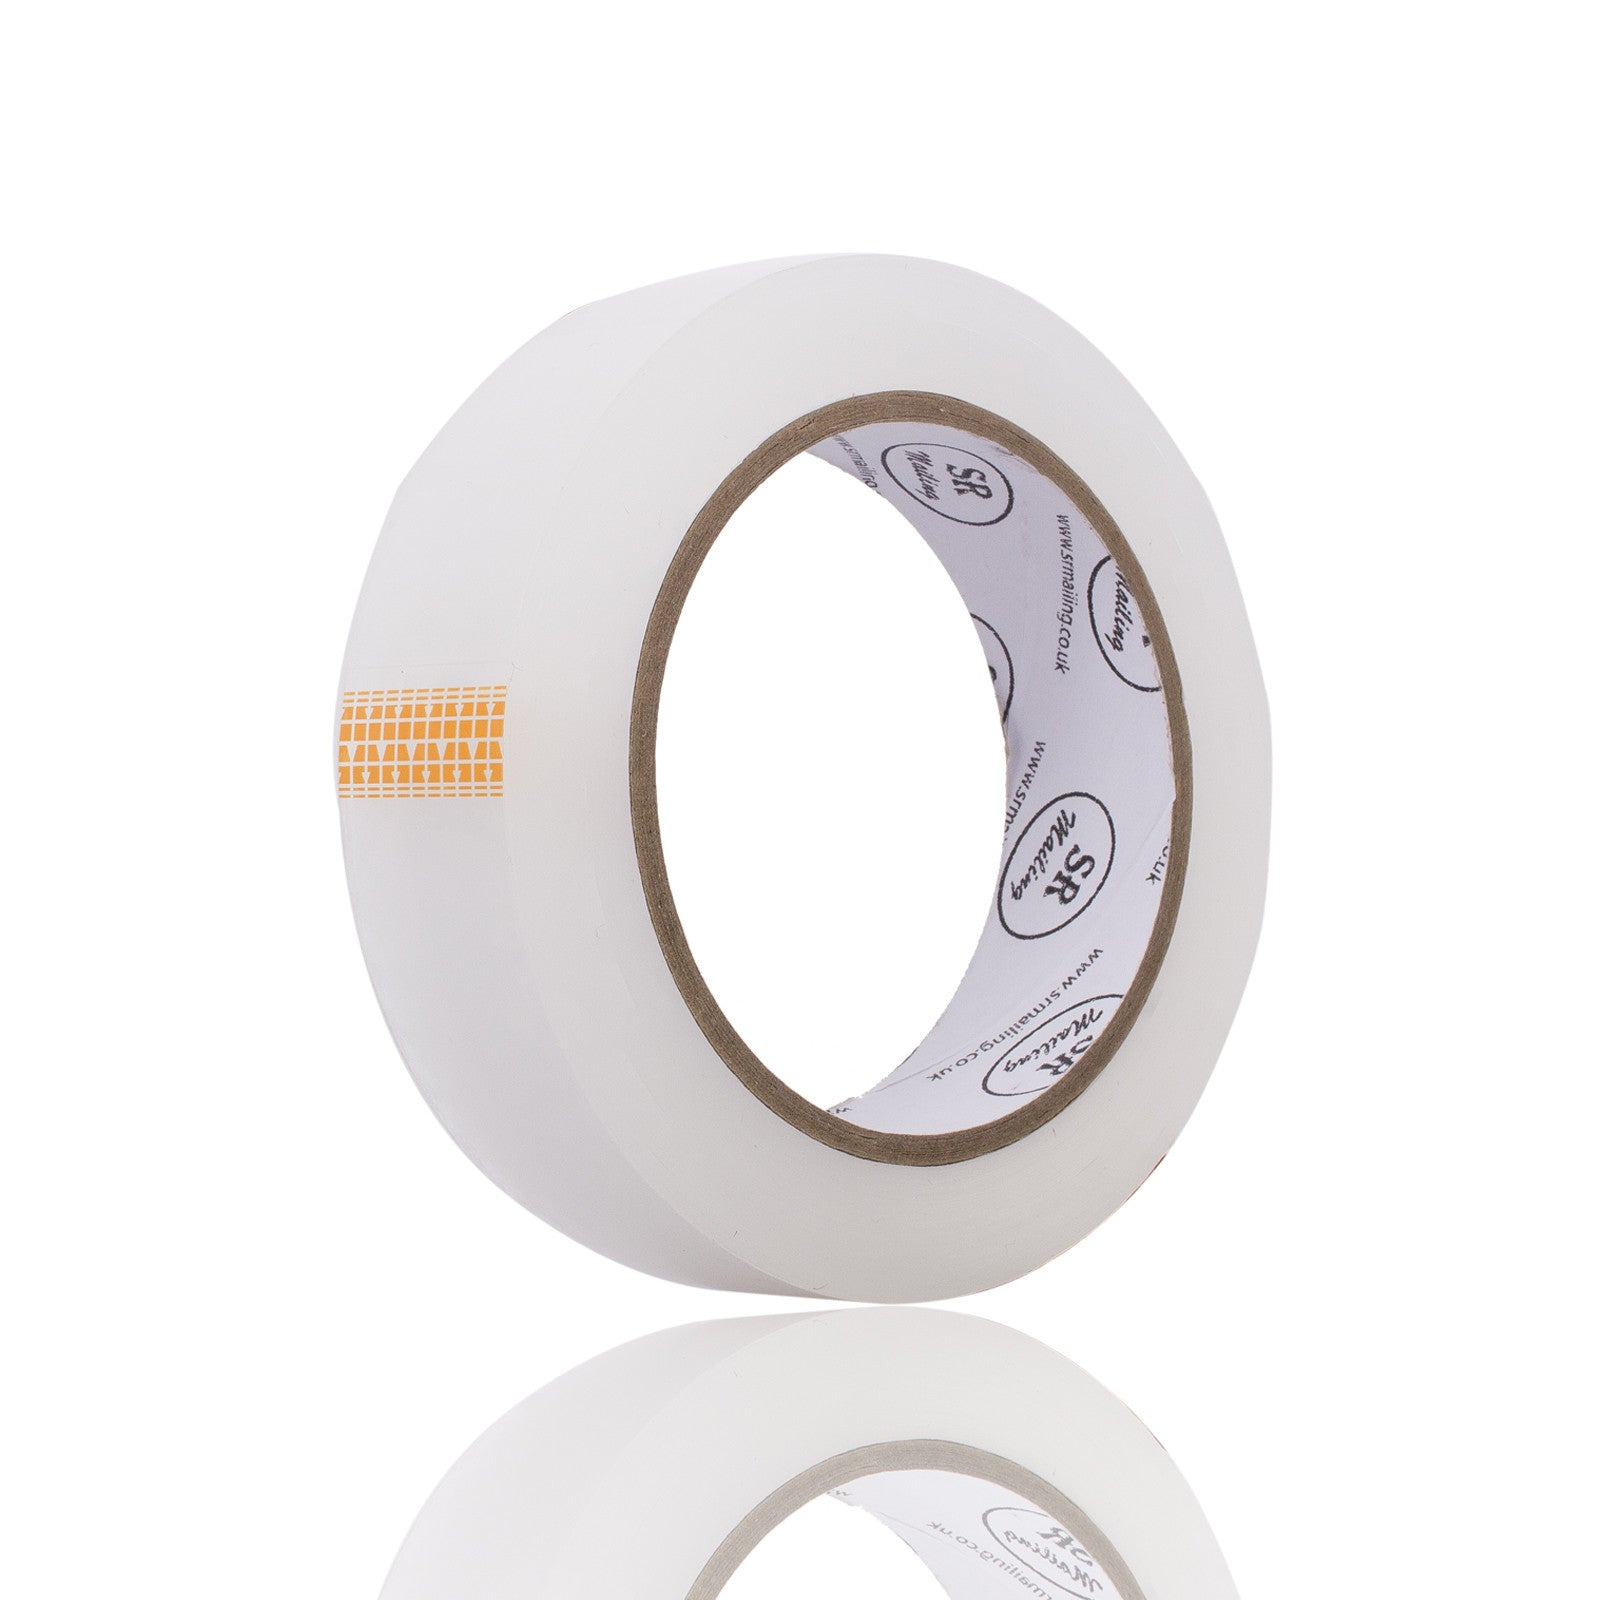 24mm x 91m (100yards) Clear Tapes,SR Mailing,Tapes